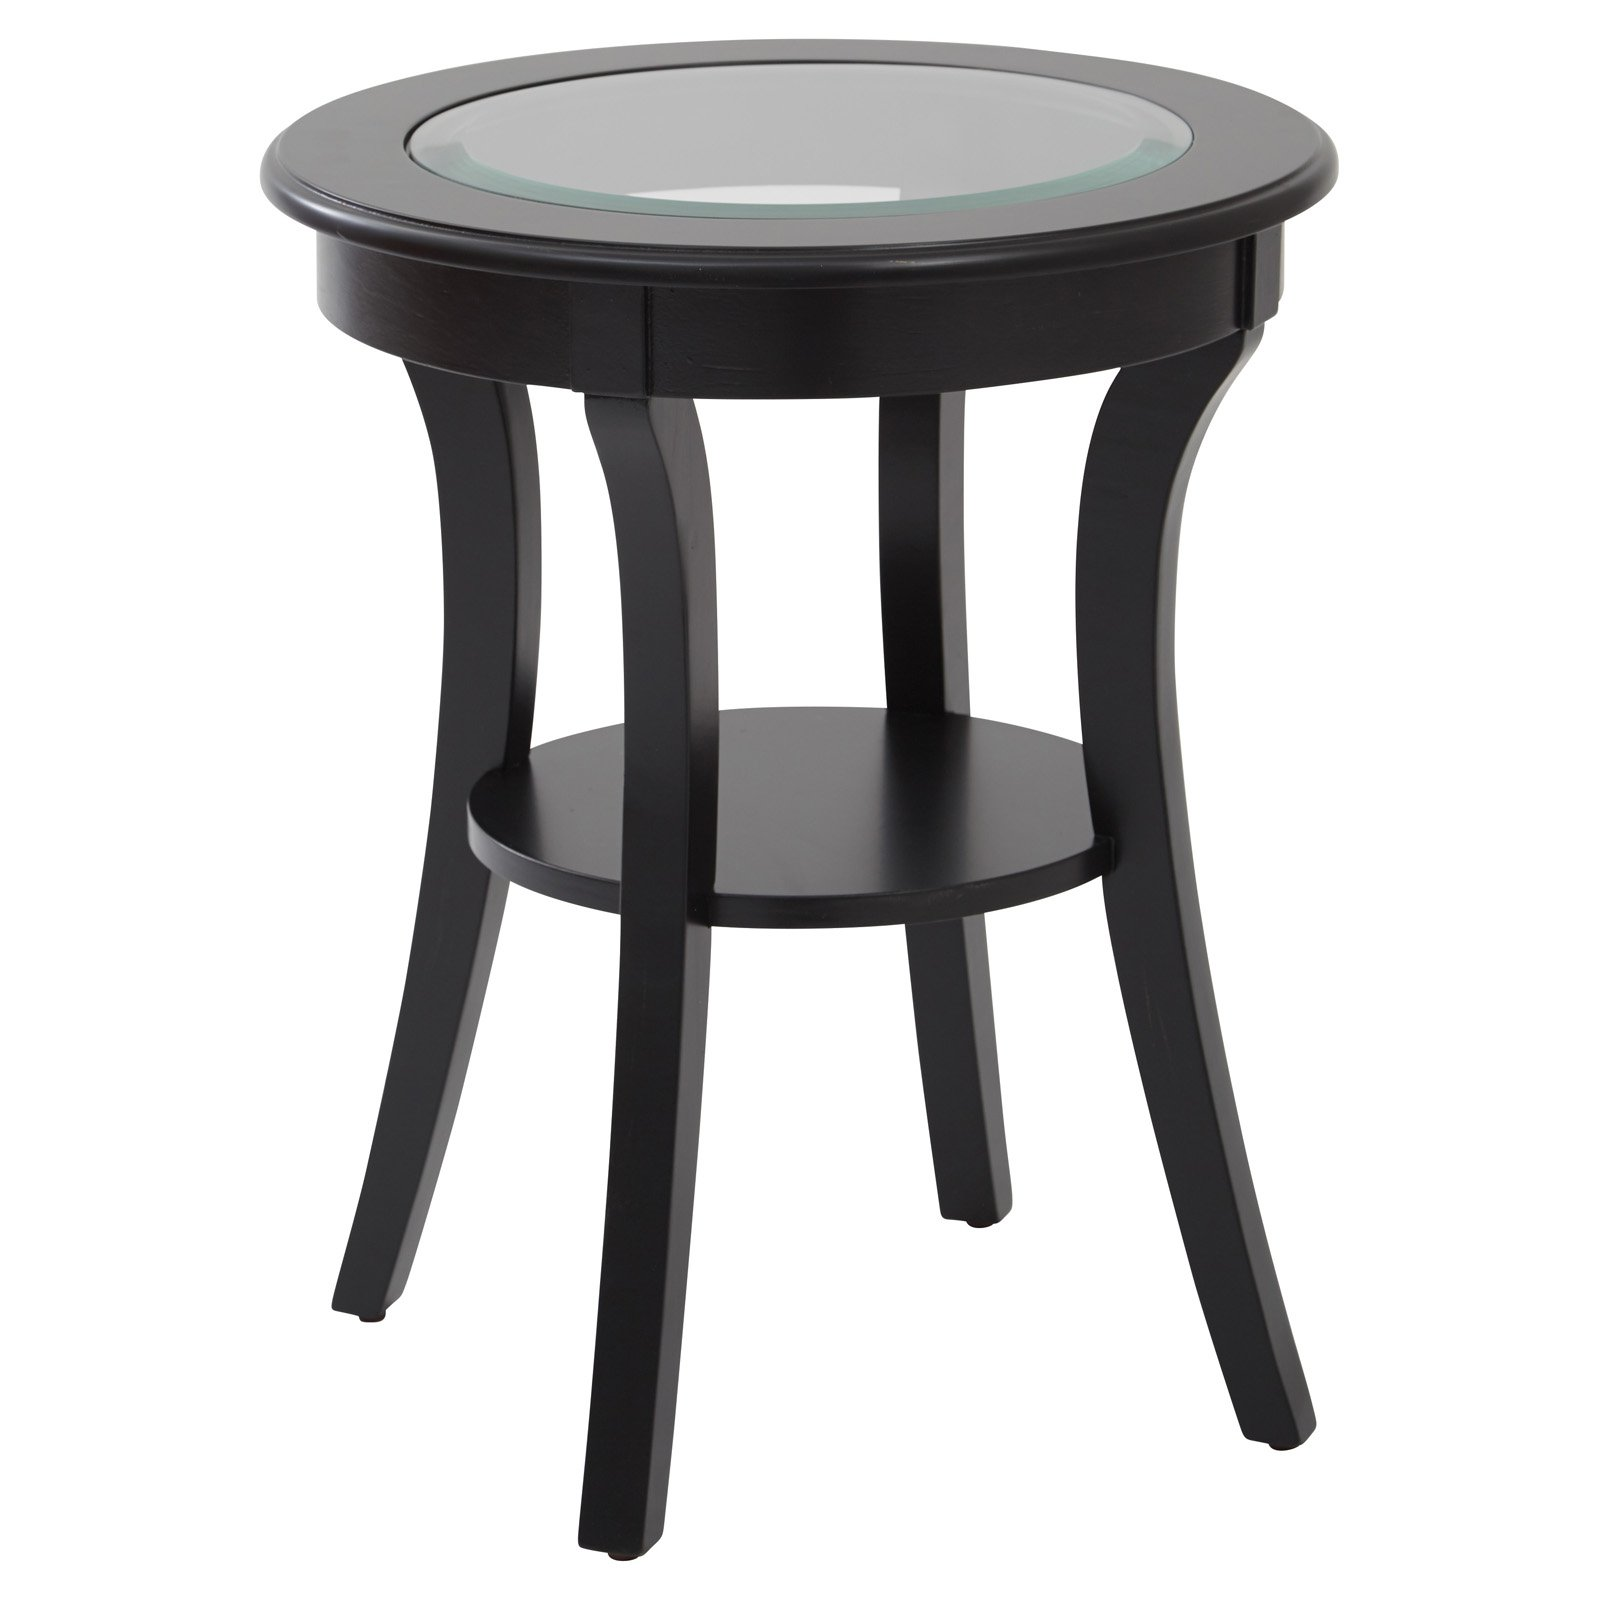 Harper Round Accent Table with Glass top, Ships Fully Assembled